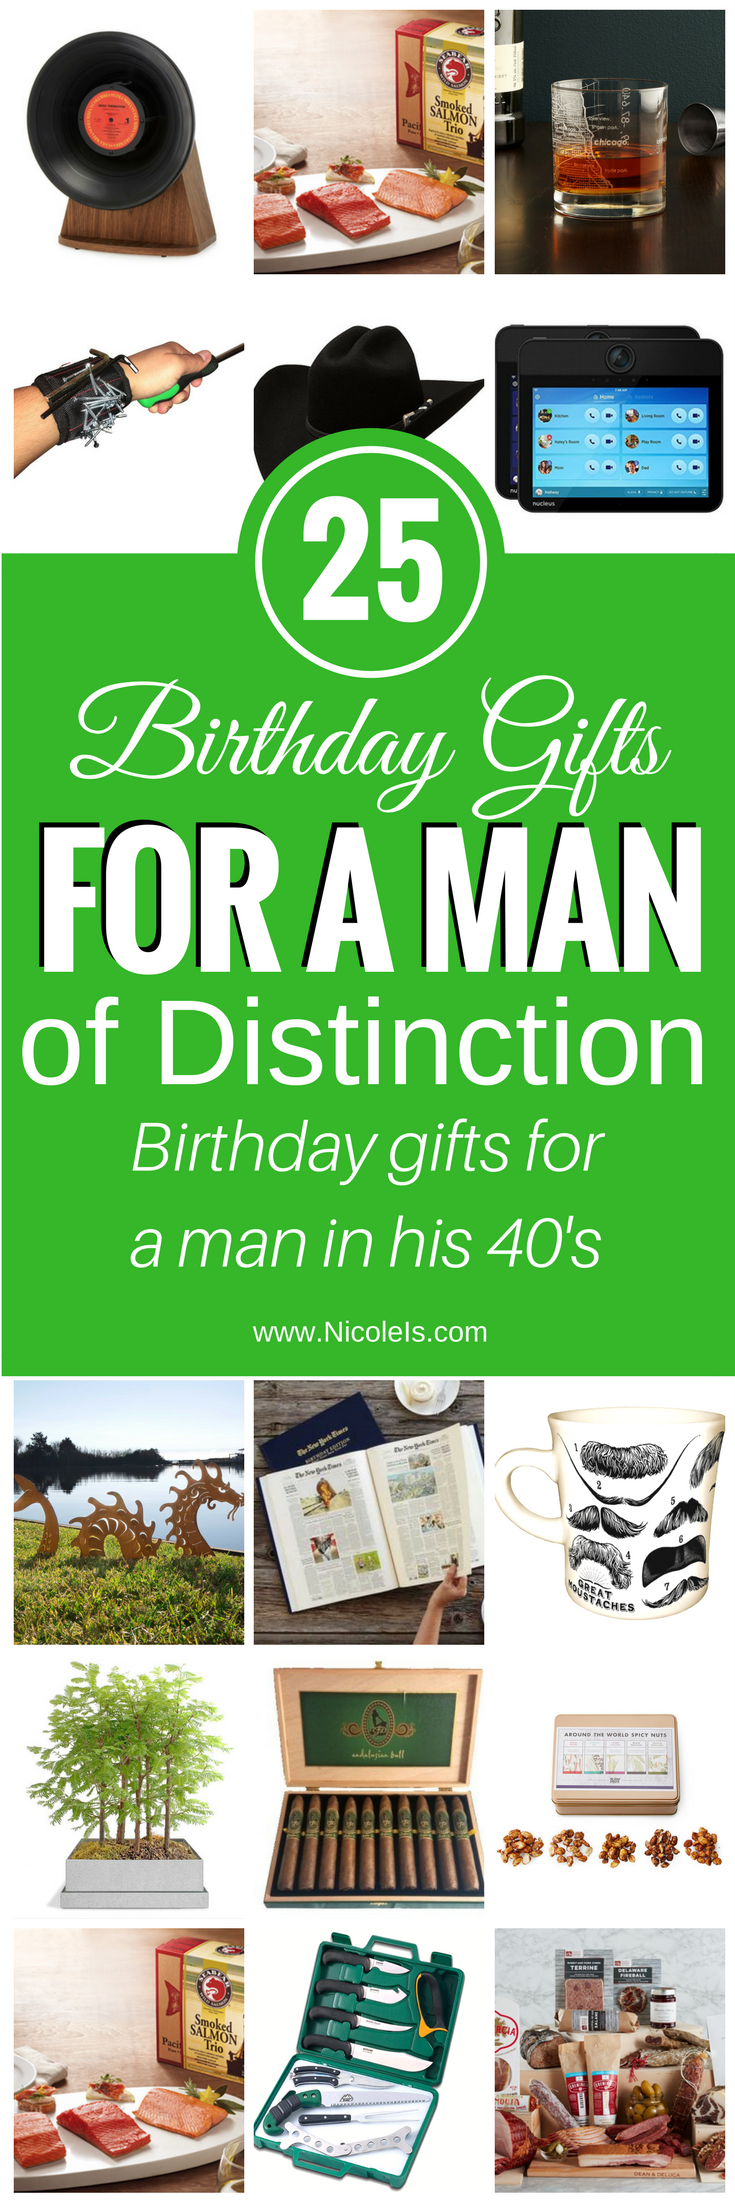 25 Birthday Gifts For A Man Of Distinction NicoleIs